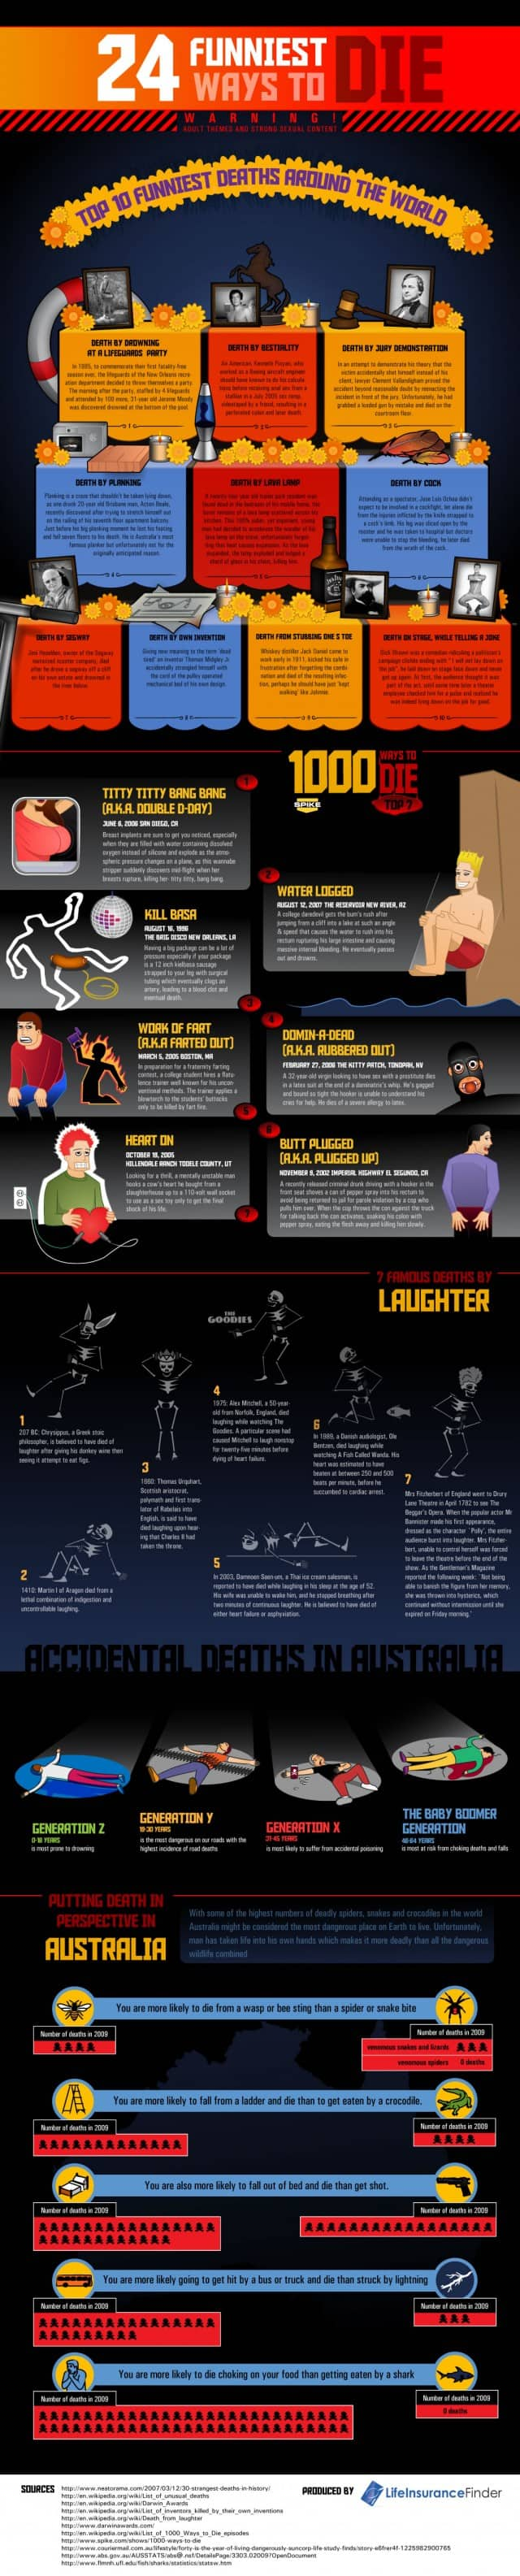 Funniest Deaths Infographic